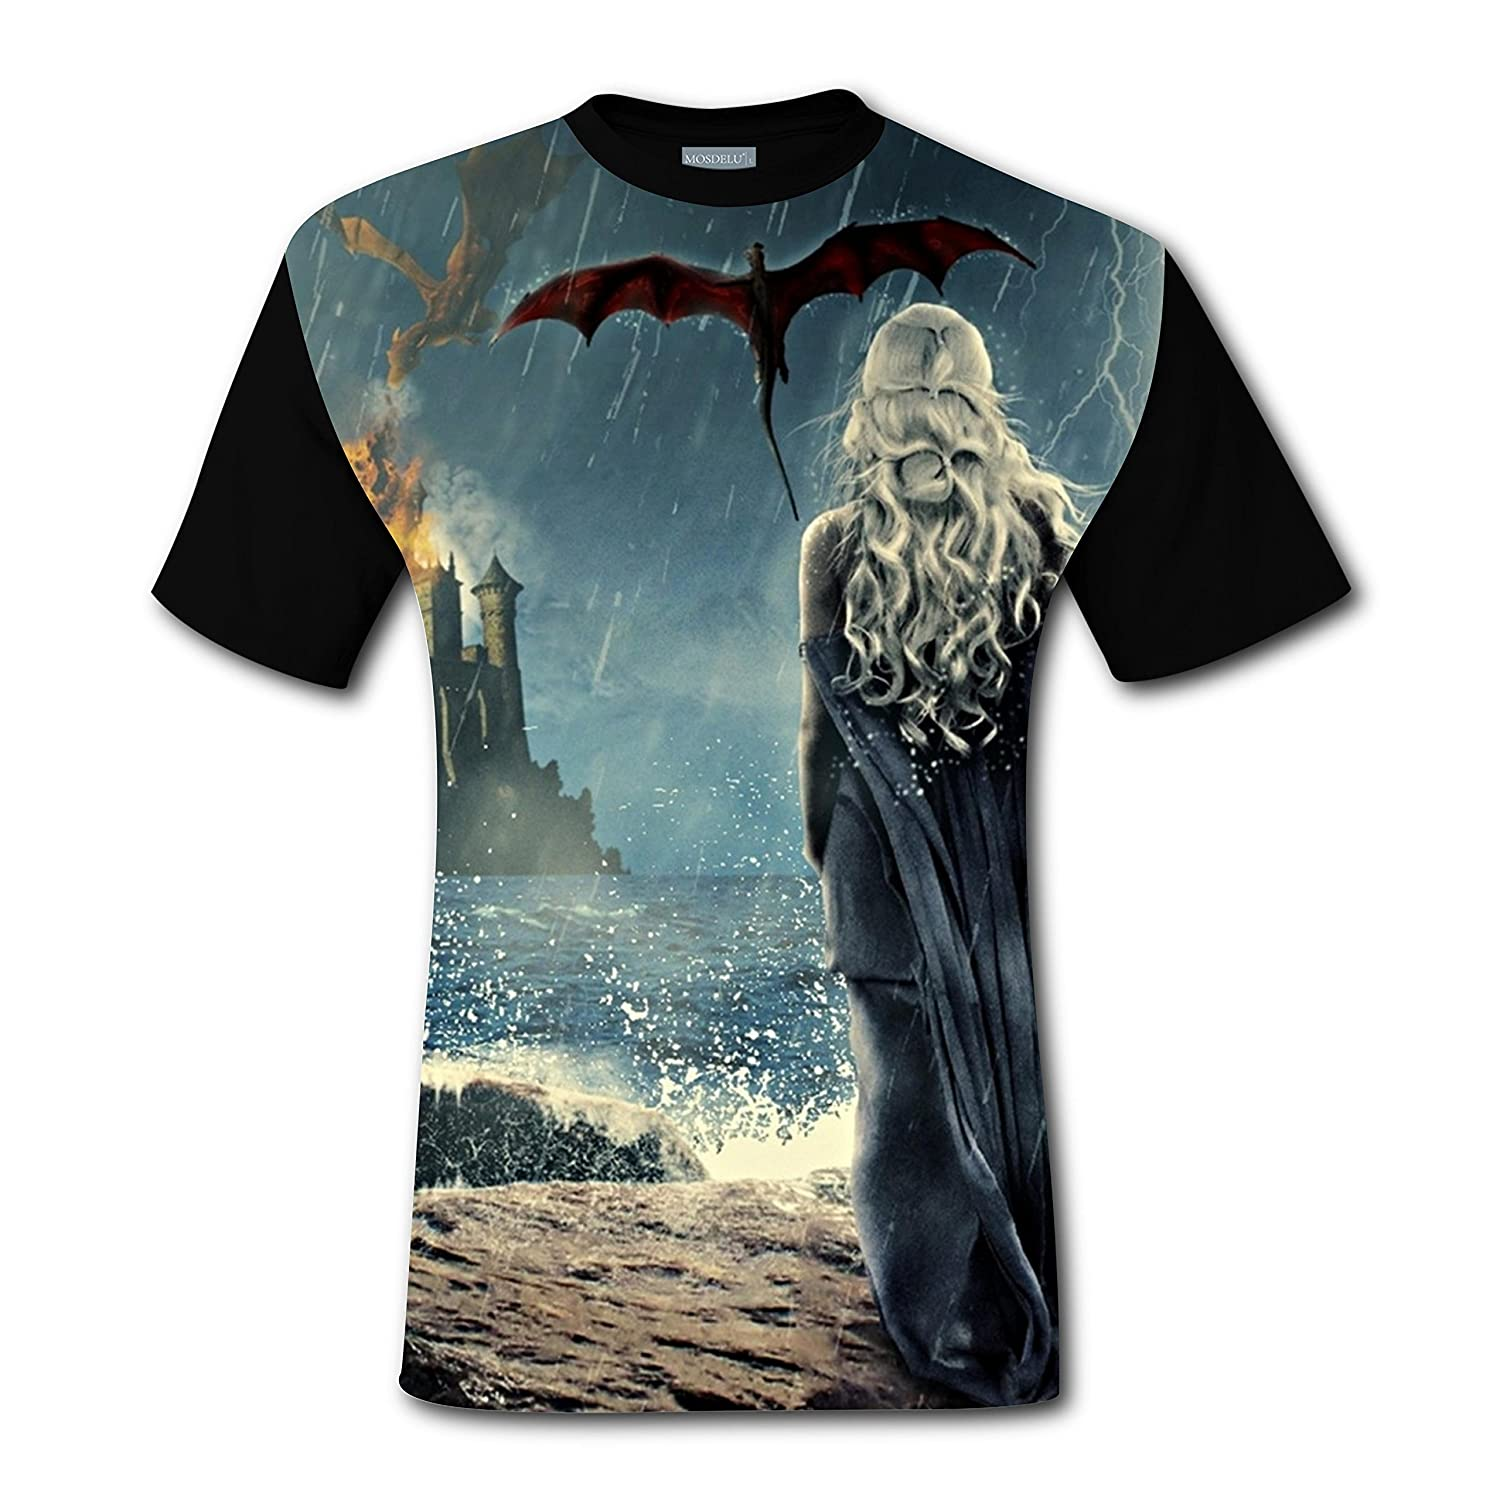 30aa81d4 T-shirts Tee Shirt Tops for Men Black Cool 3D Game-of-Thrones Dragon ...